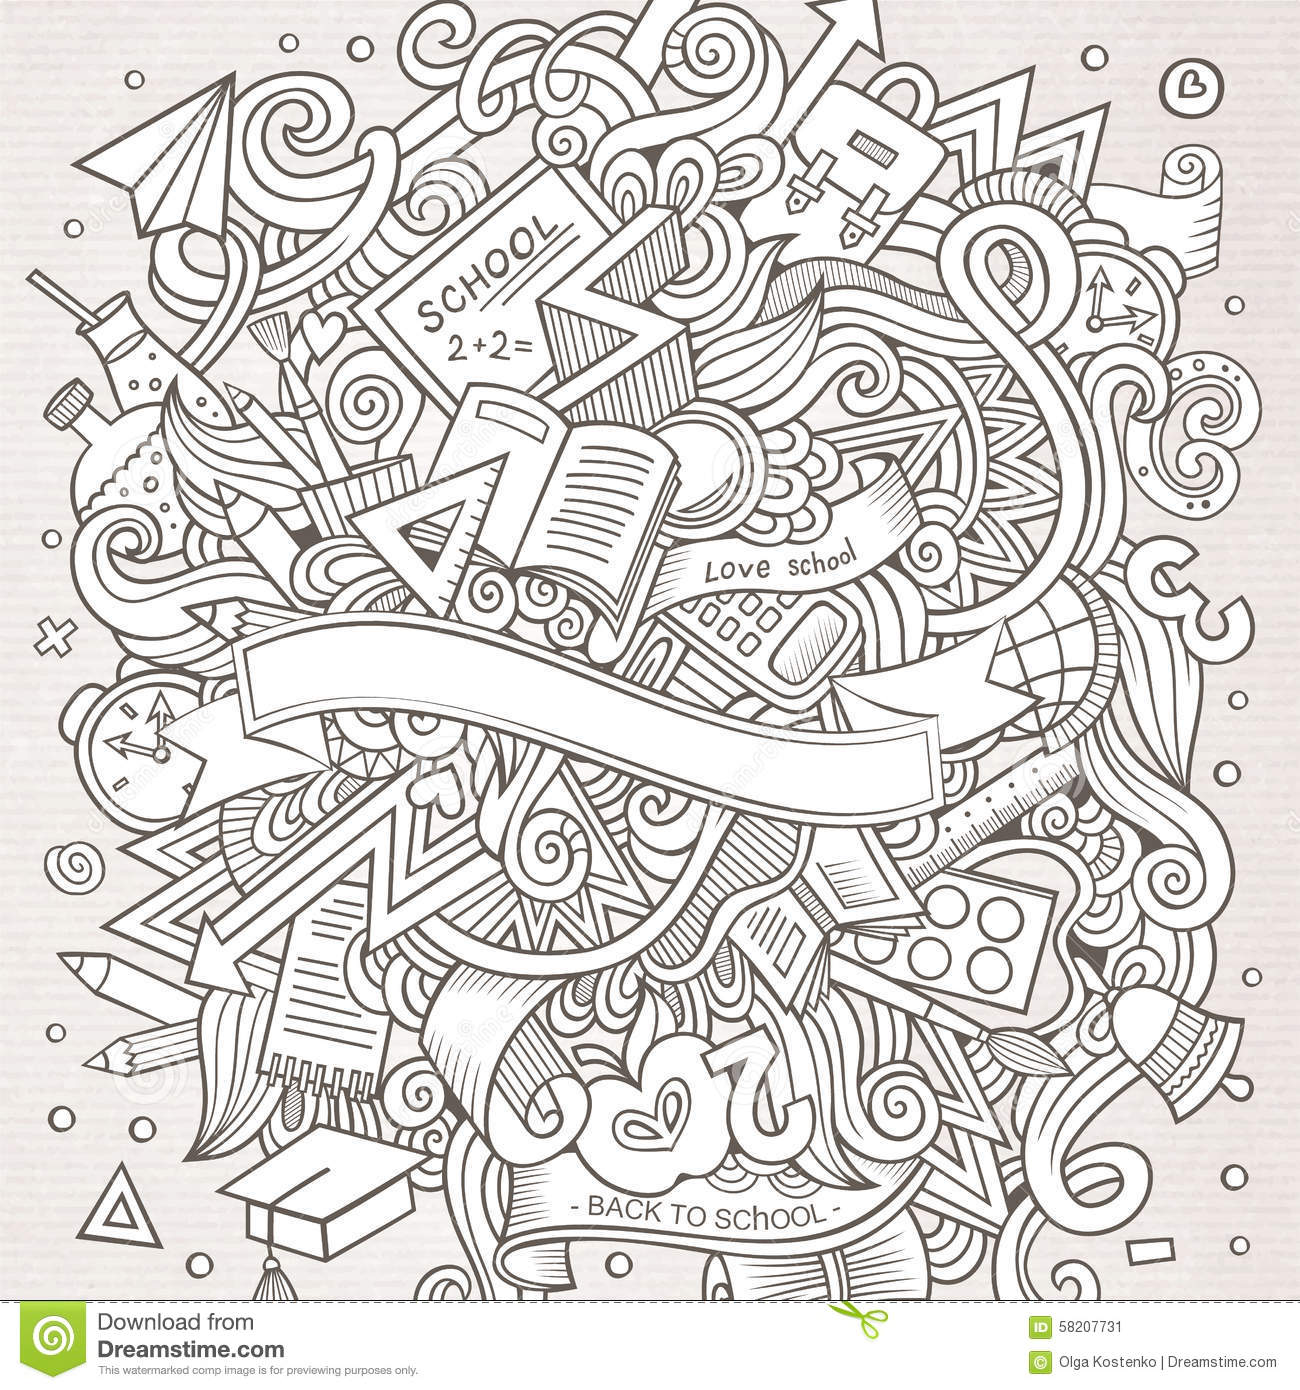 designs coloring pages school subjects - photo#17